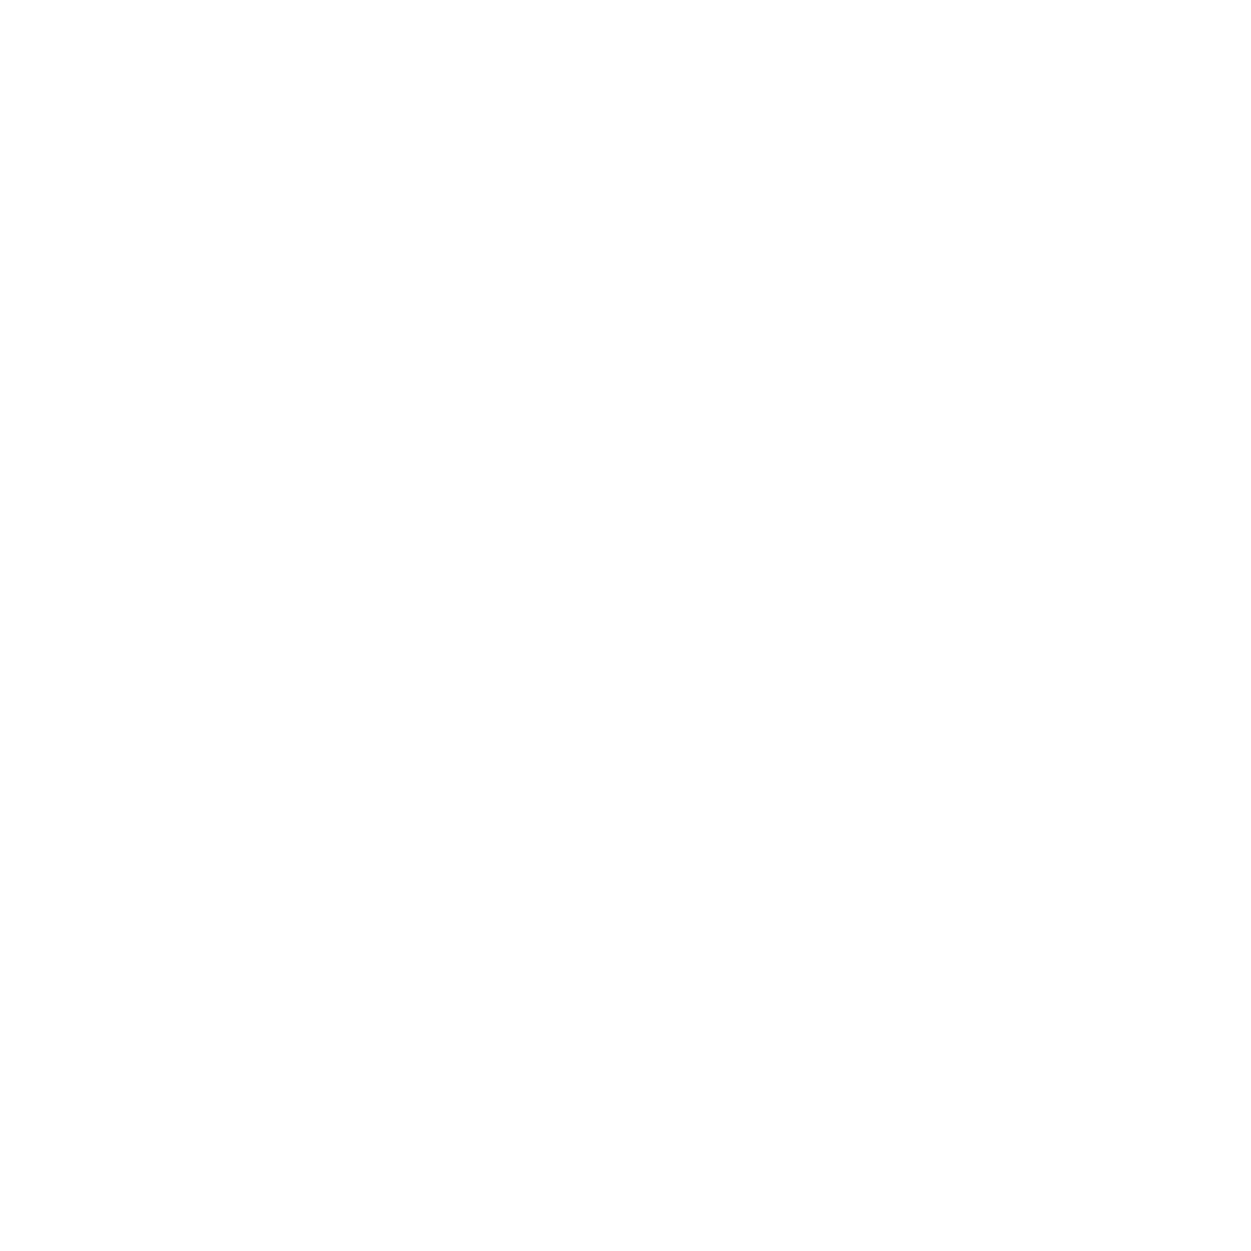 State of Alaska Governor's Council on Disabilities and Special Education